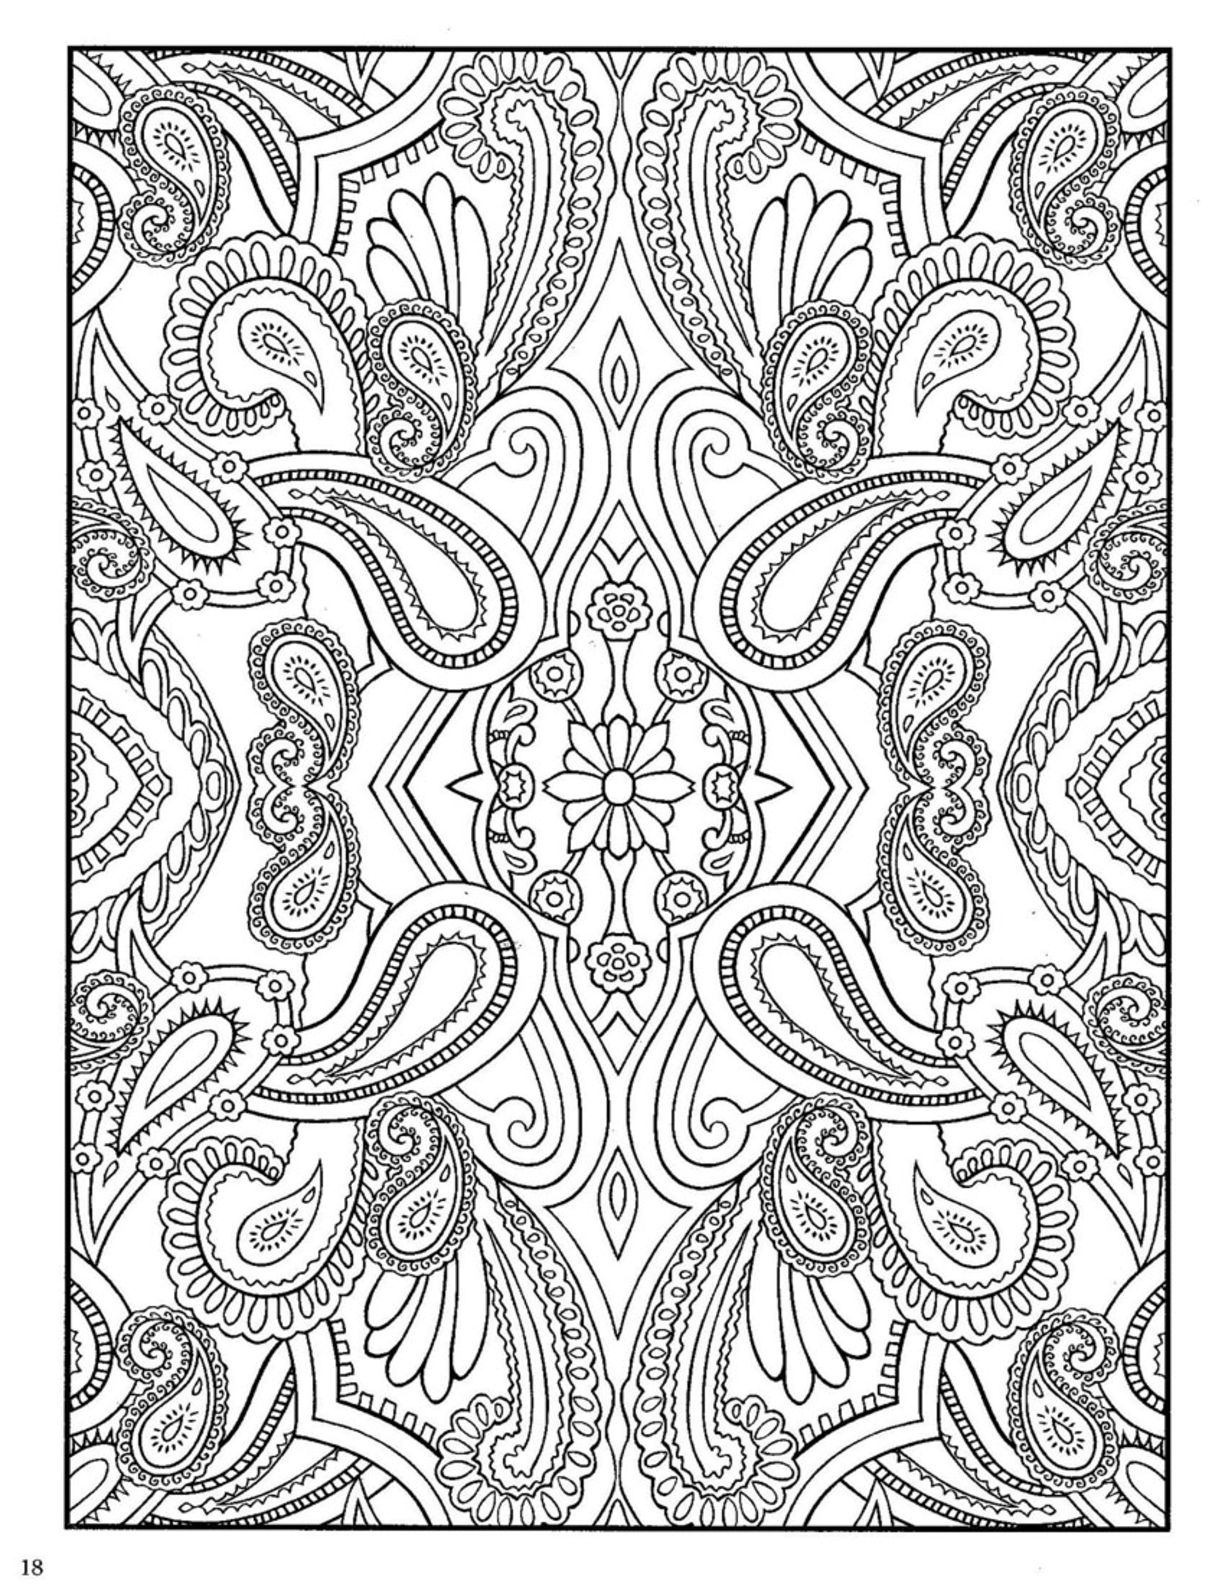 Dover Paisley Designs Coloring Book | Dover Coloring | Paisley ...